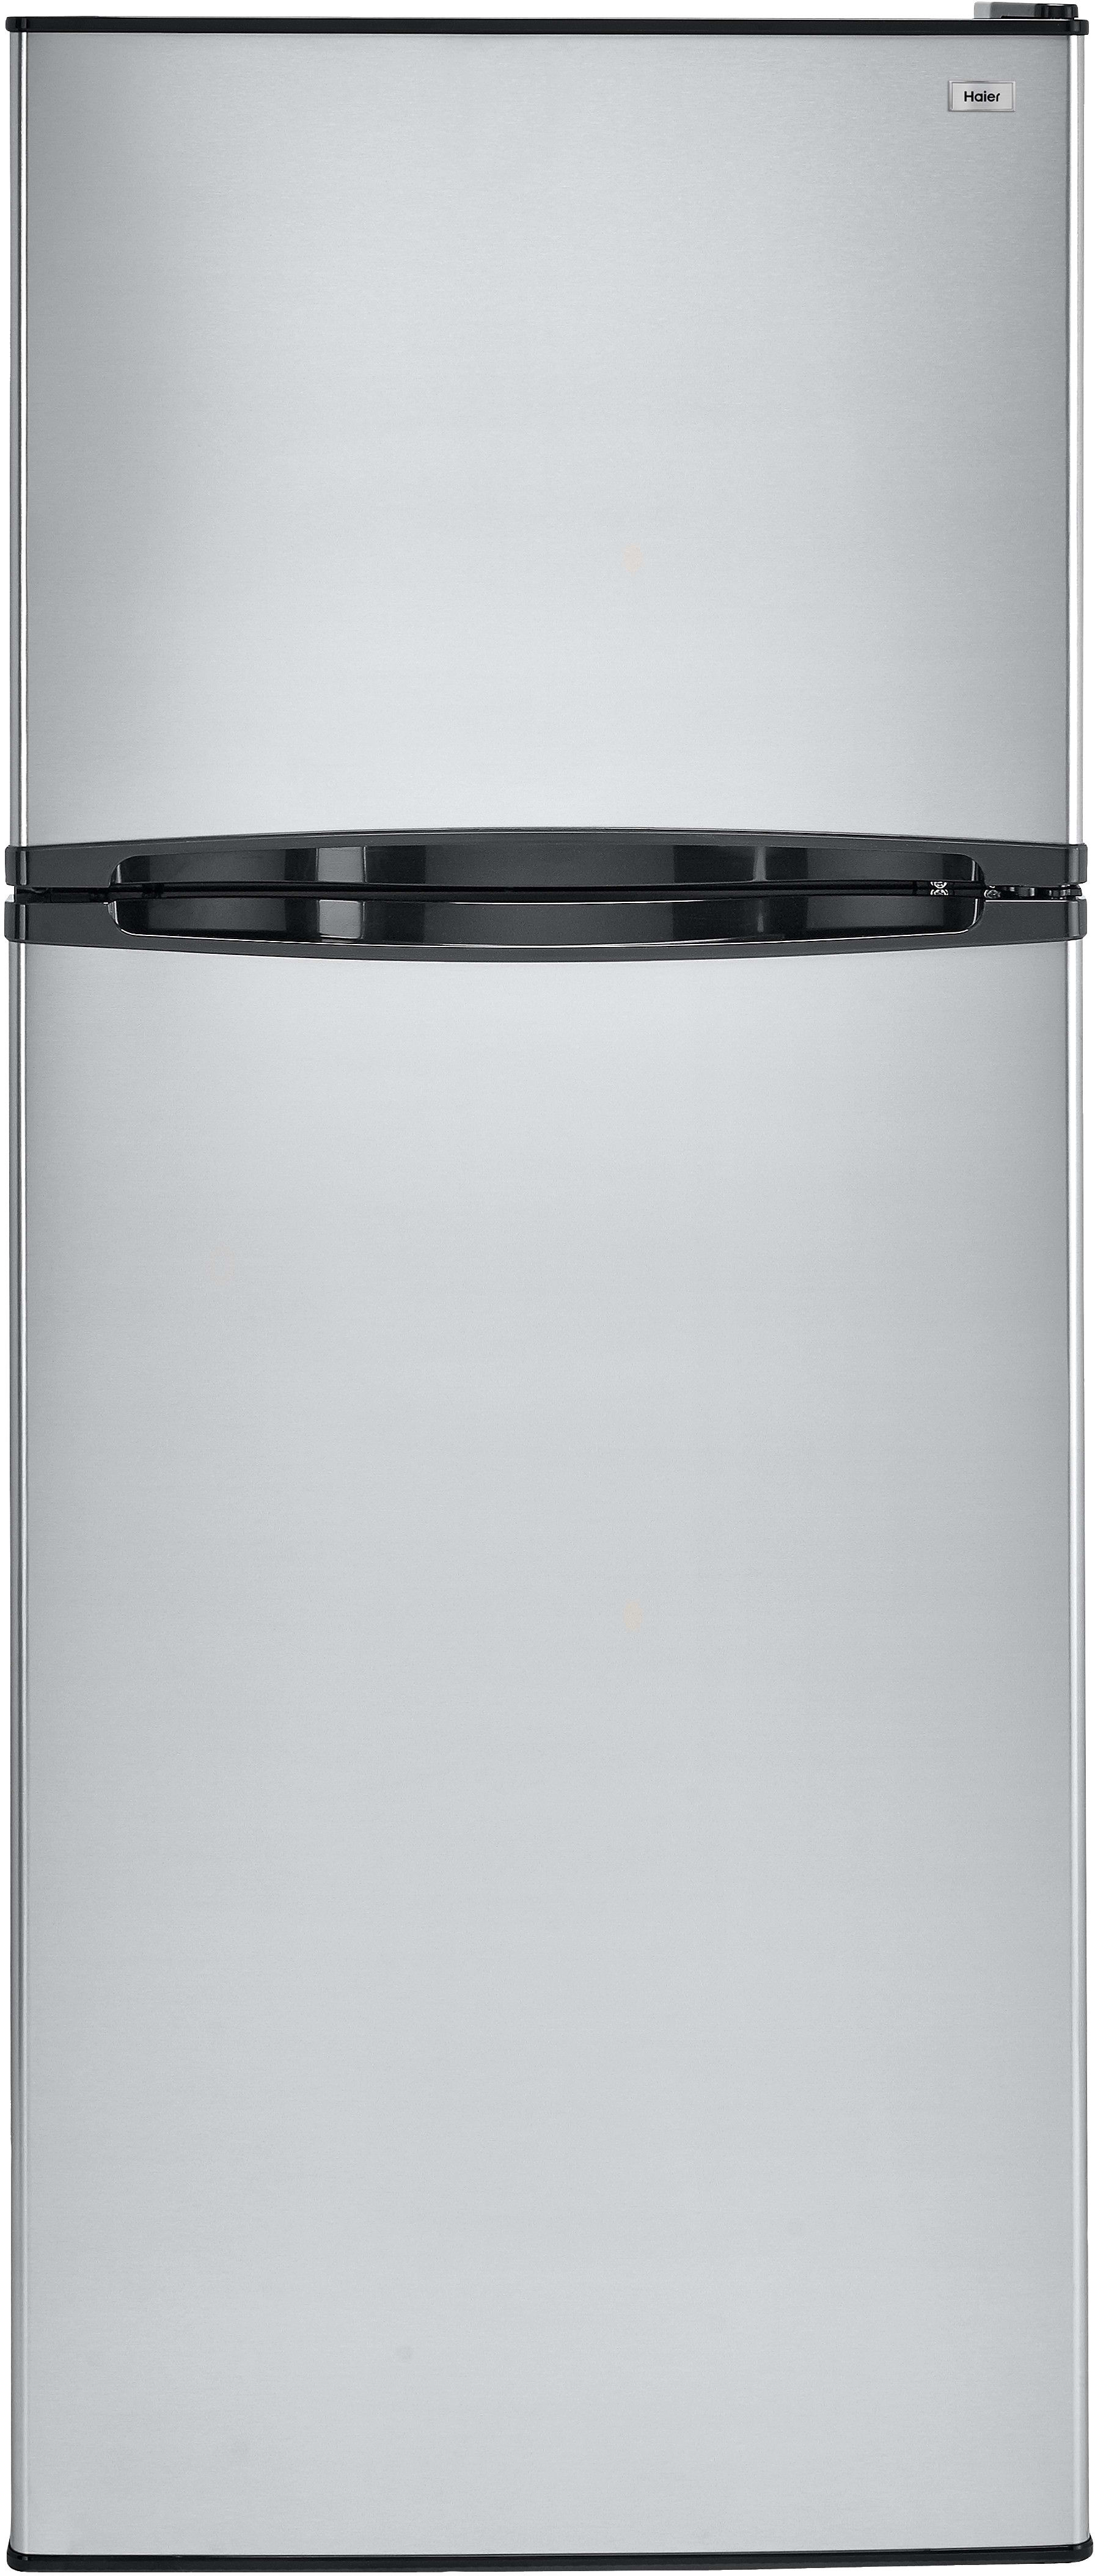 Haier HA10TG21SS 9.8 cu. ft. Top Mount Refrigerator with 2 Spill ...